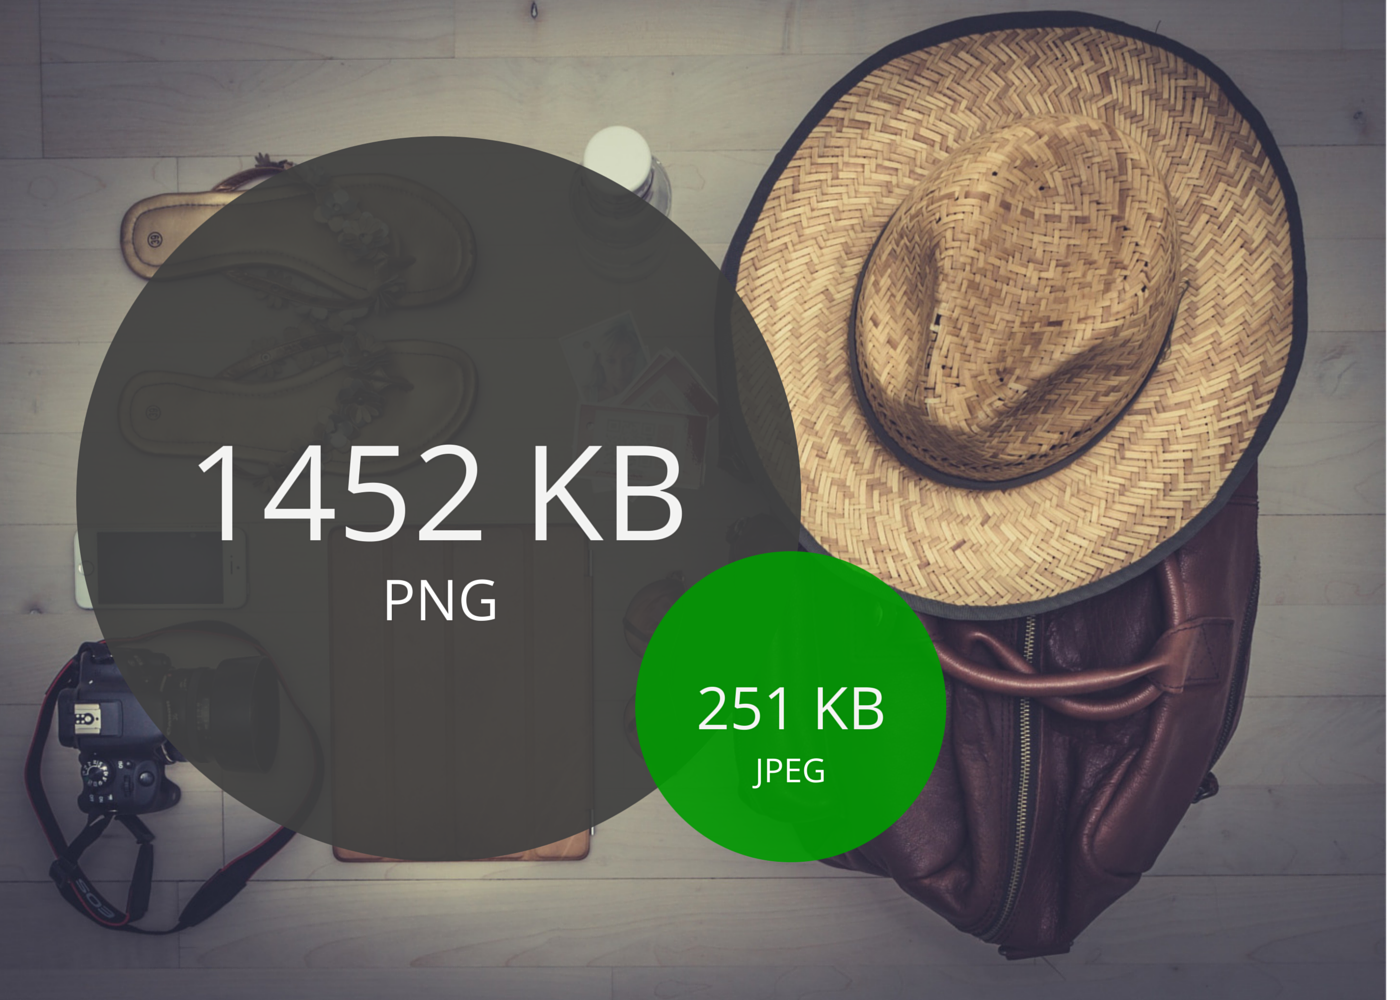 Conceptboard PNG vs JPEG file size